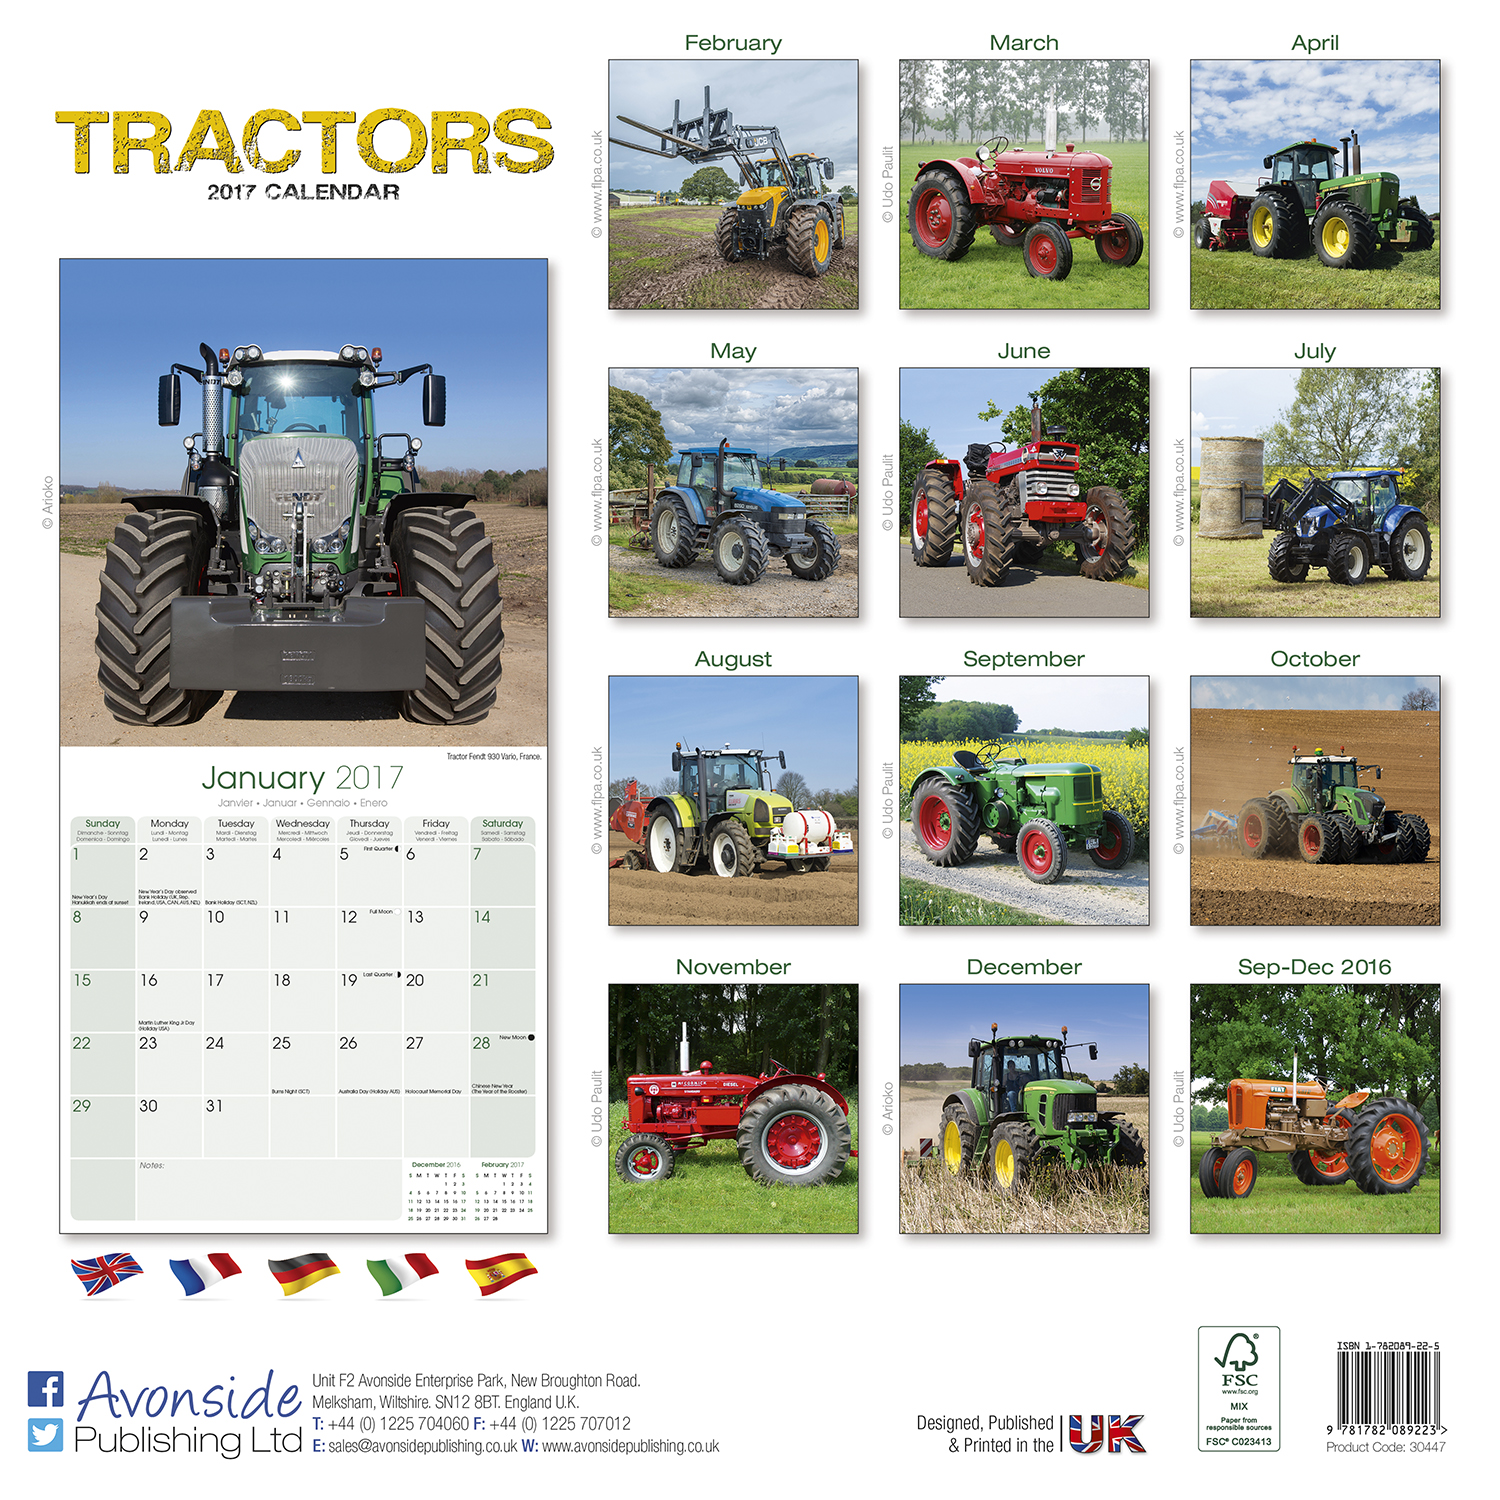 Tractors Calendar 2017 Pet Prints Inc The Wall Donald Trump39s Wall Know  Your Meme Great. Transcript Donald Trump39s   creatopliste com